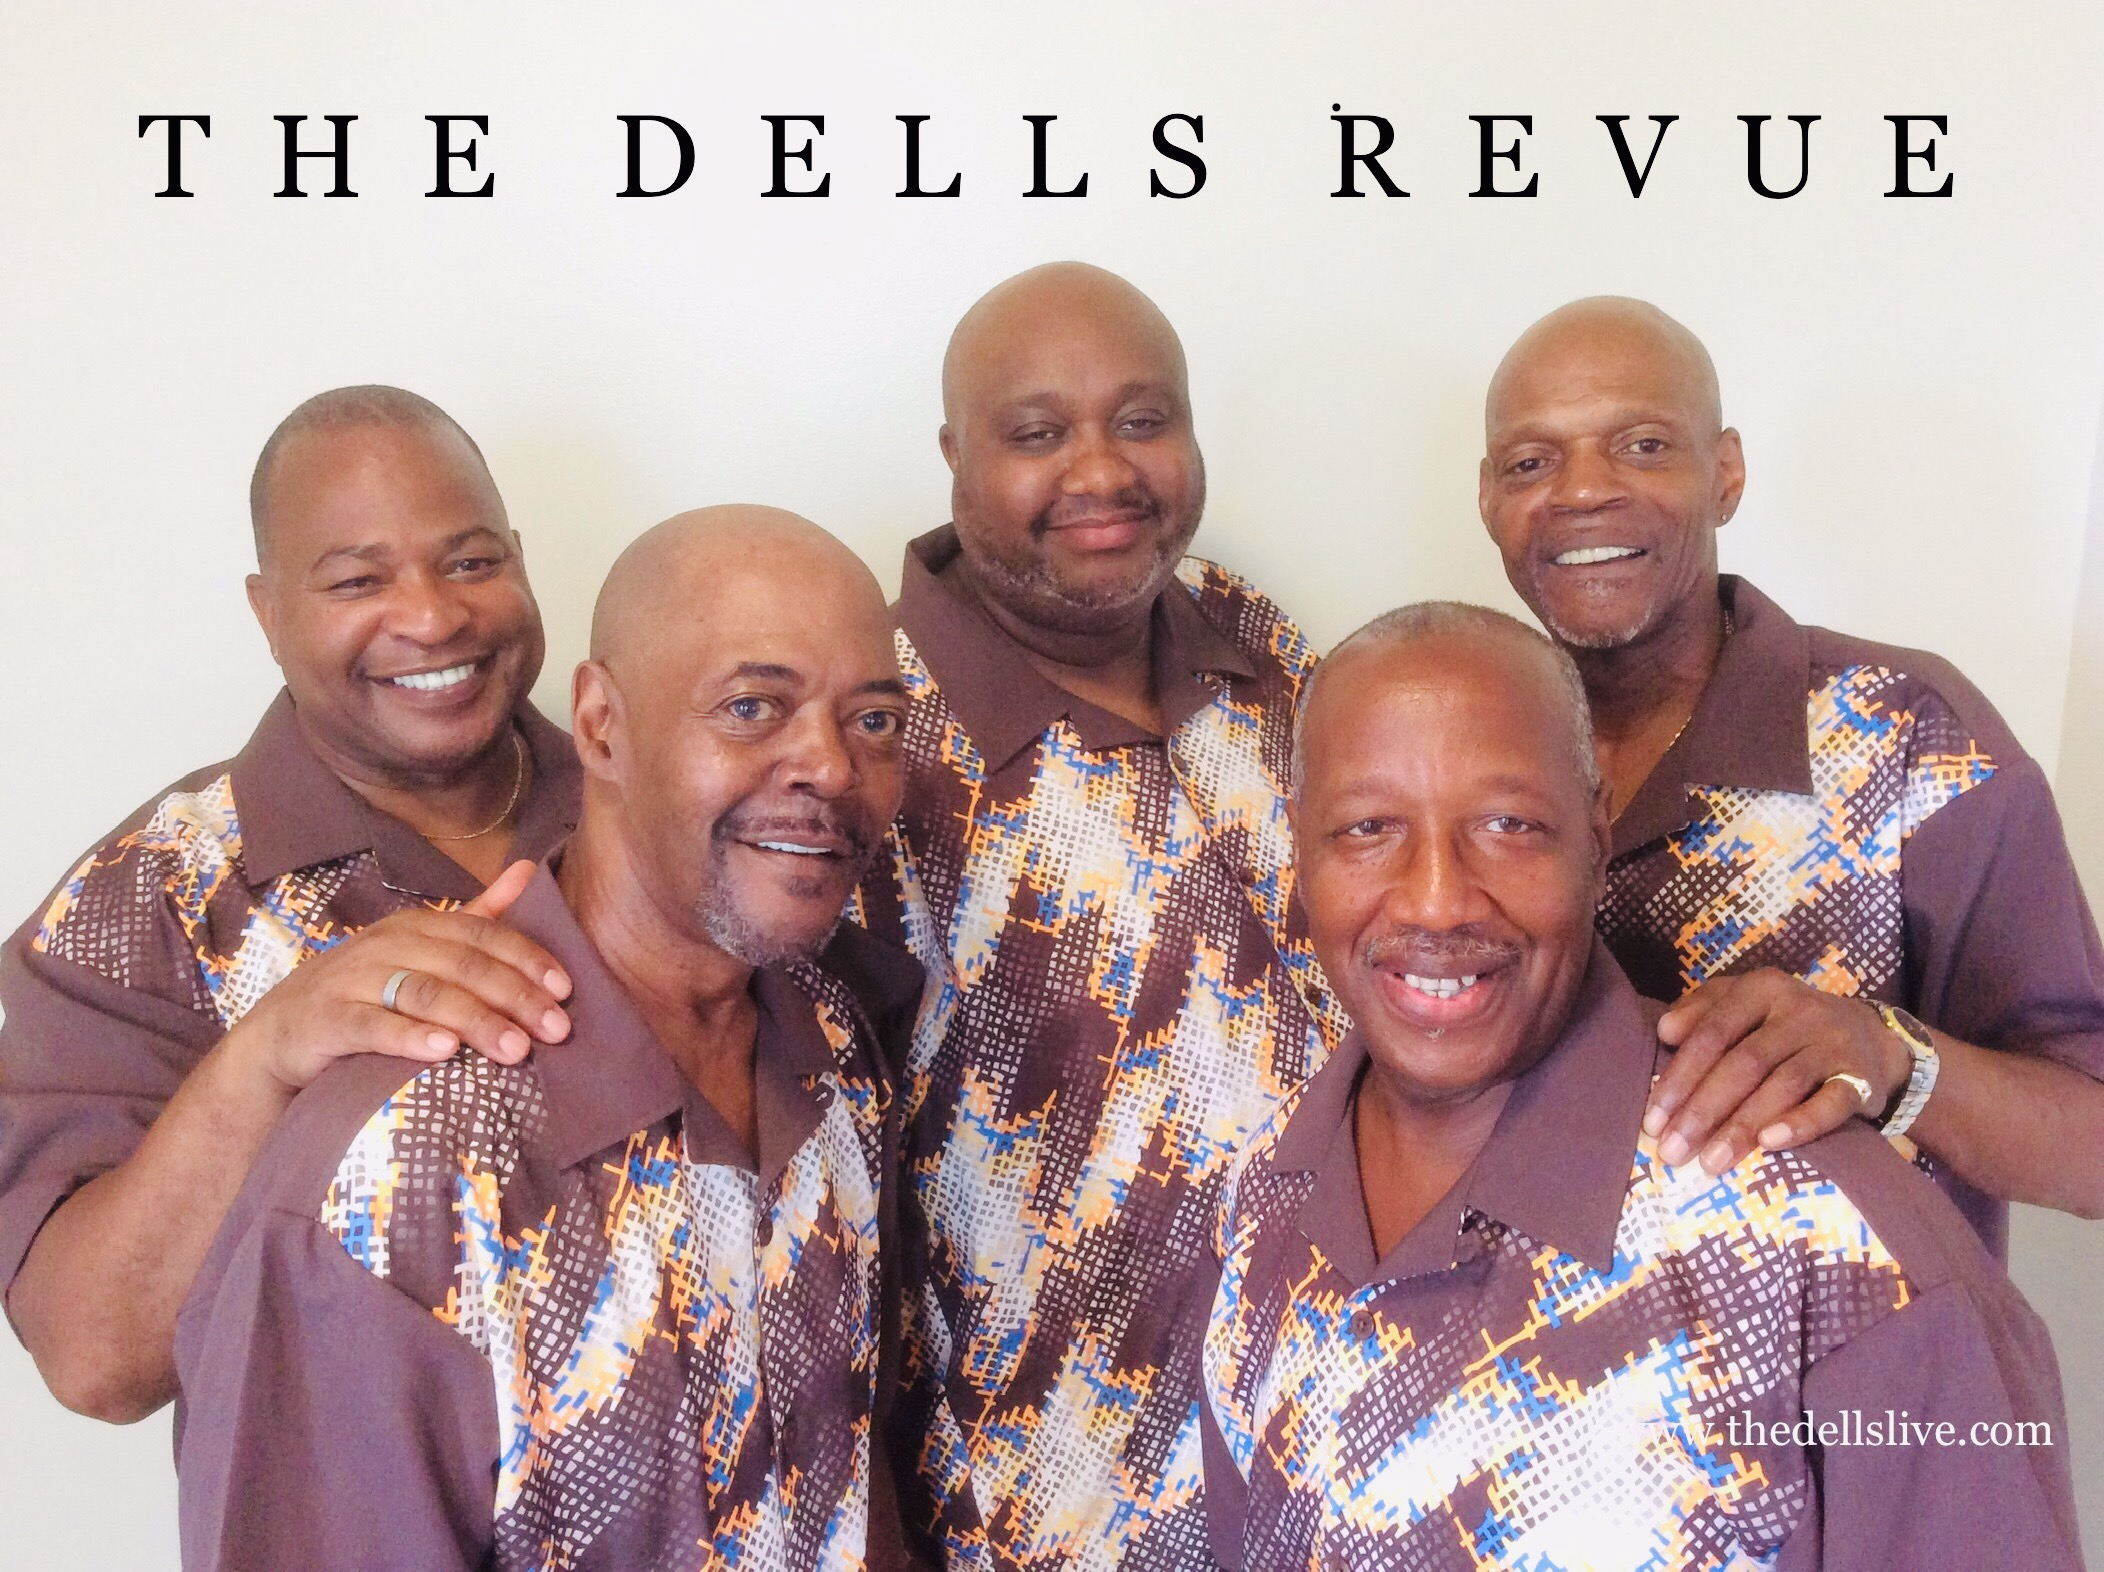 THE DELLS REVUE LIVE!